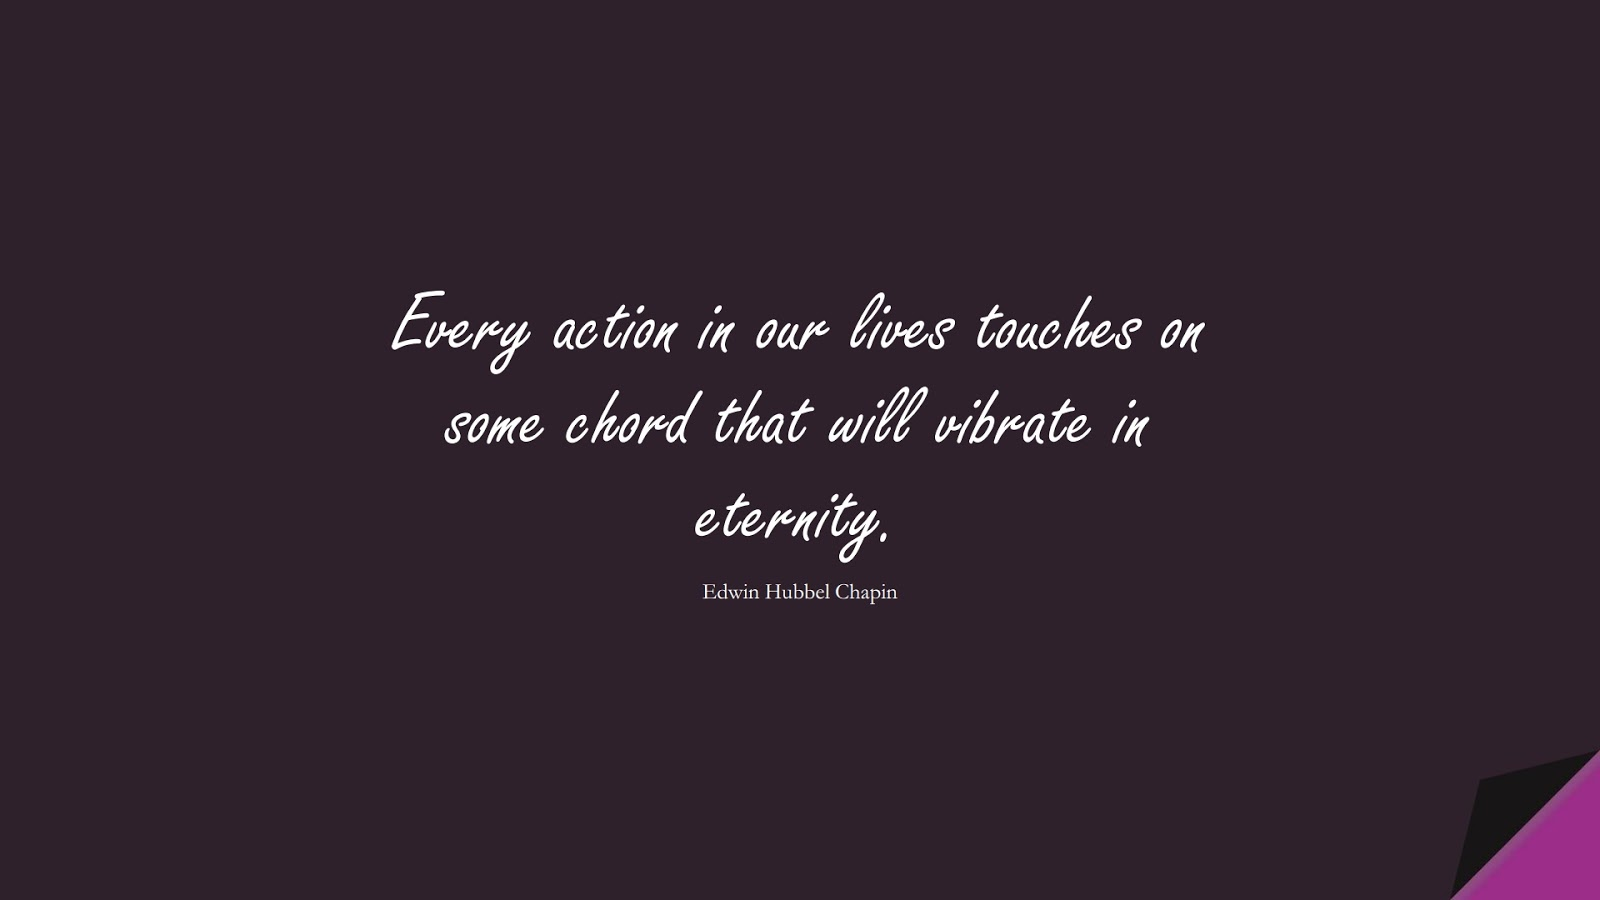 Every action in our lives touches on some chord that will vibrate in eternity. (Edwin Hubbel Chapin);  #SuccessQuotes